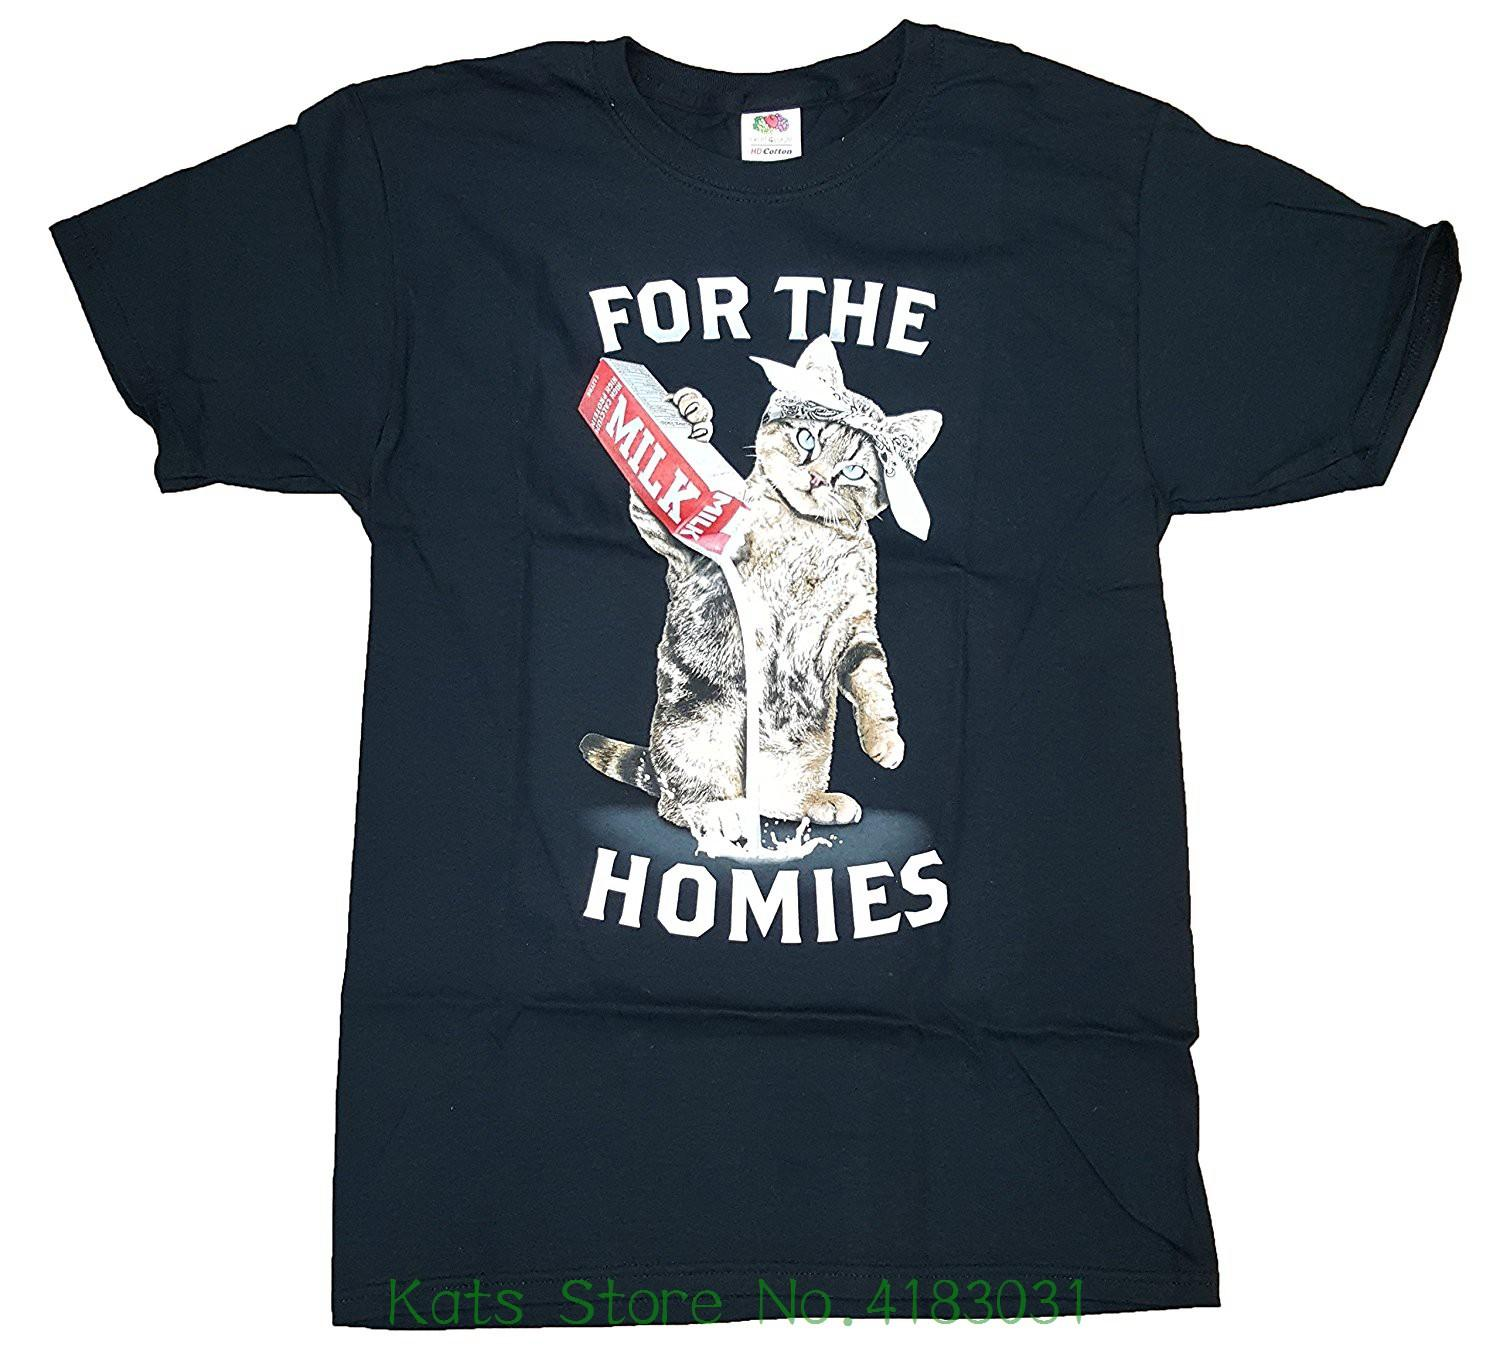 6fed931d4 ... Fashion Kitty Cat For The Homies Black Graphic T Shirt Hip Hop